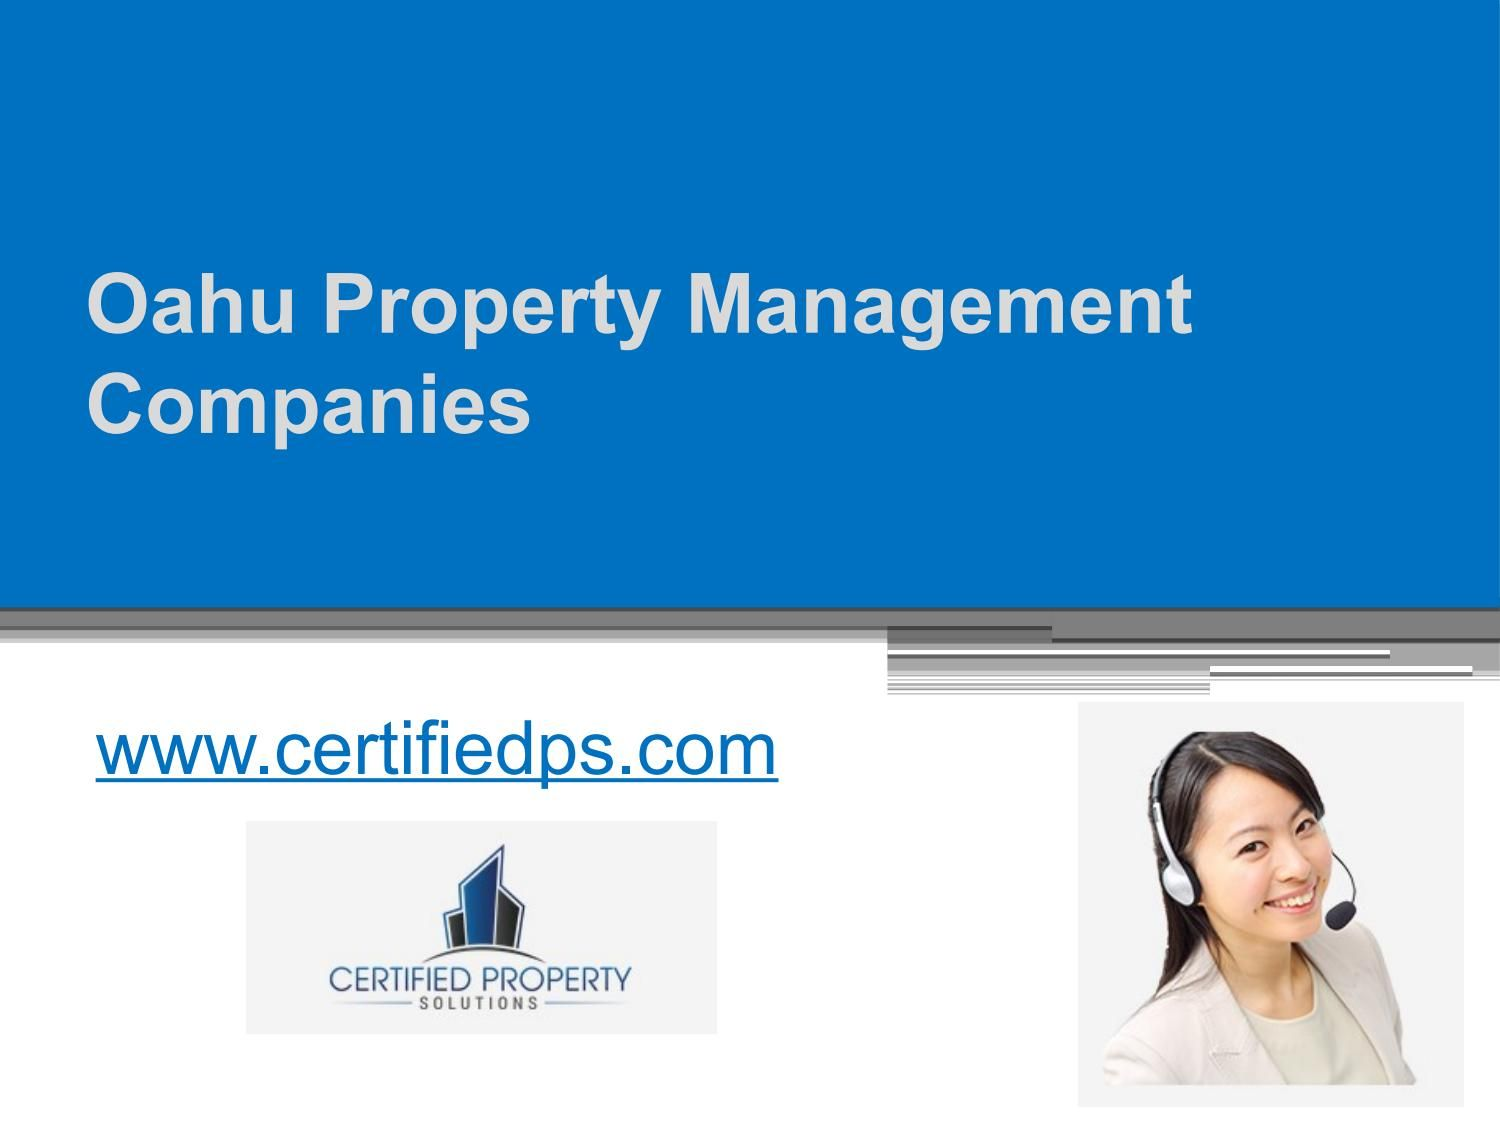 Oahu Property Management Companies Of Http Www Certifiedps Com Connect Owners To Renters Real Estate Management Rental Property Management Management Company